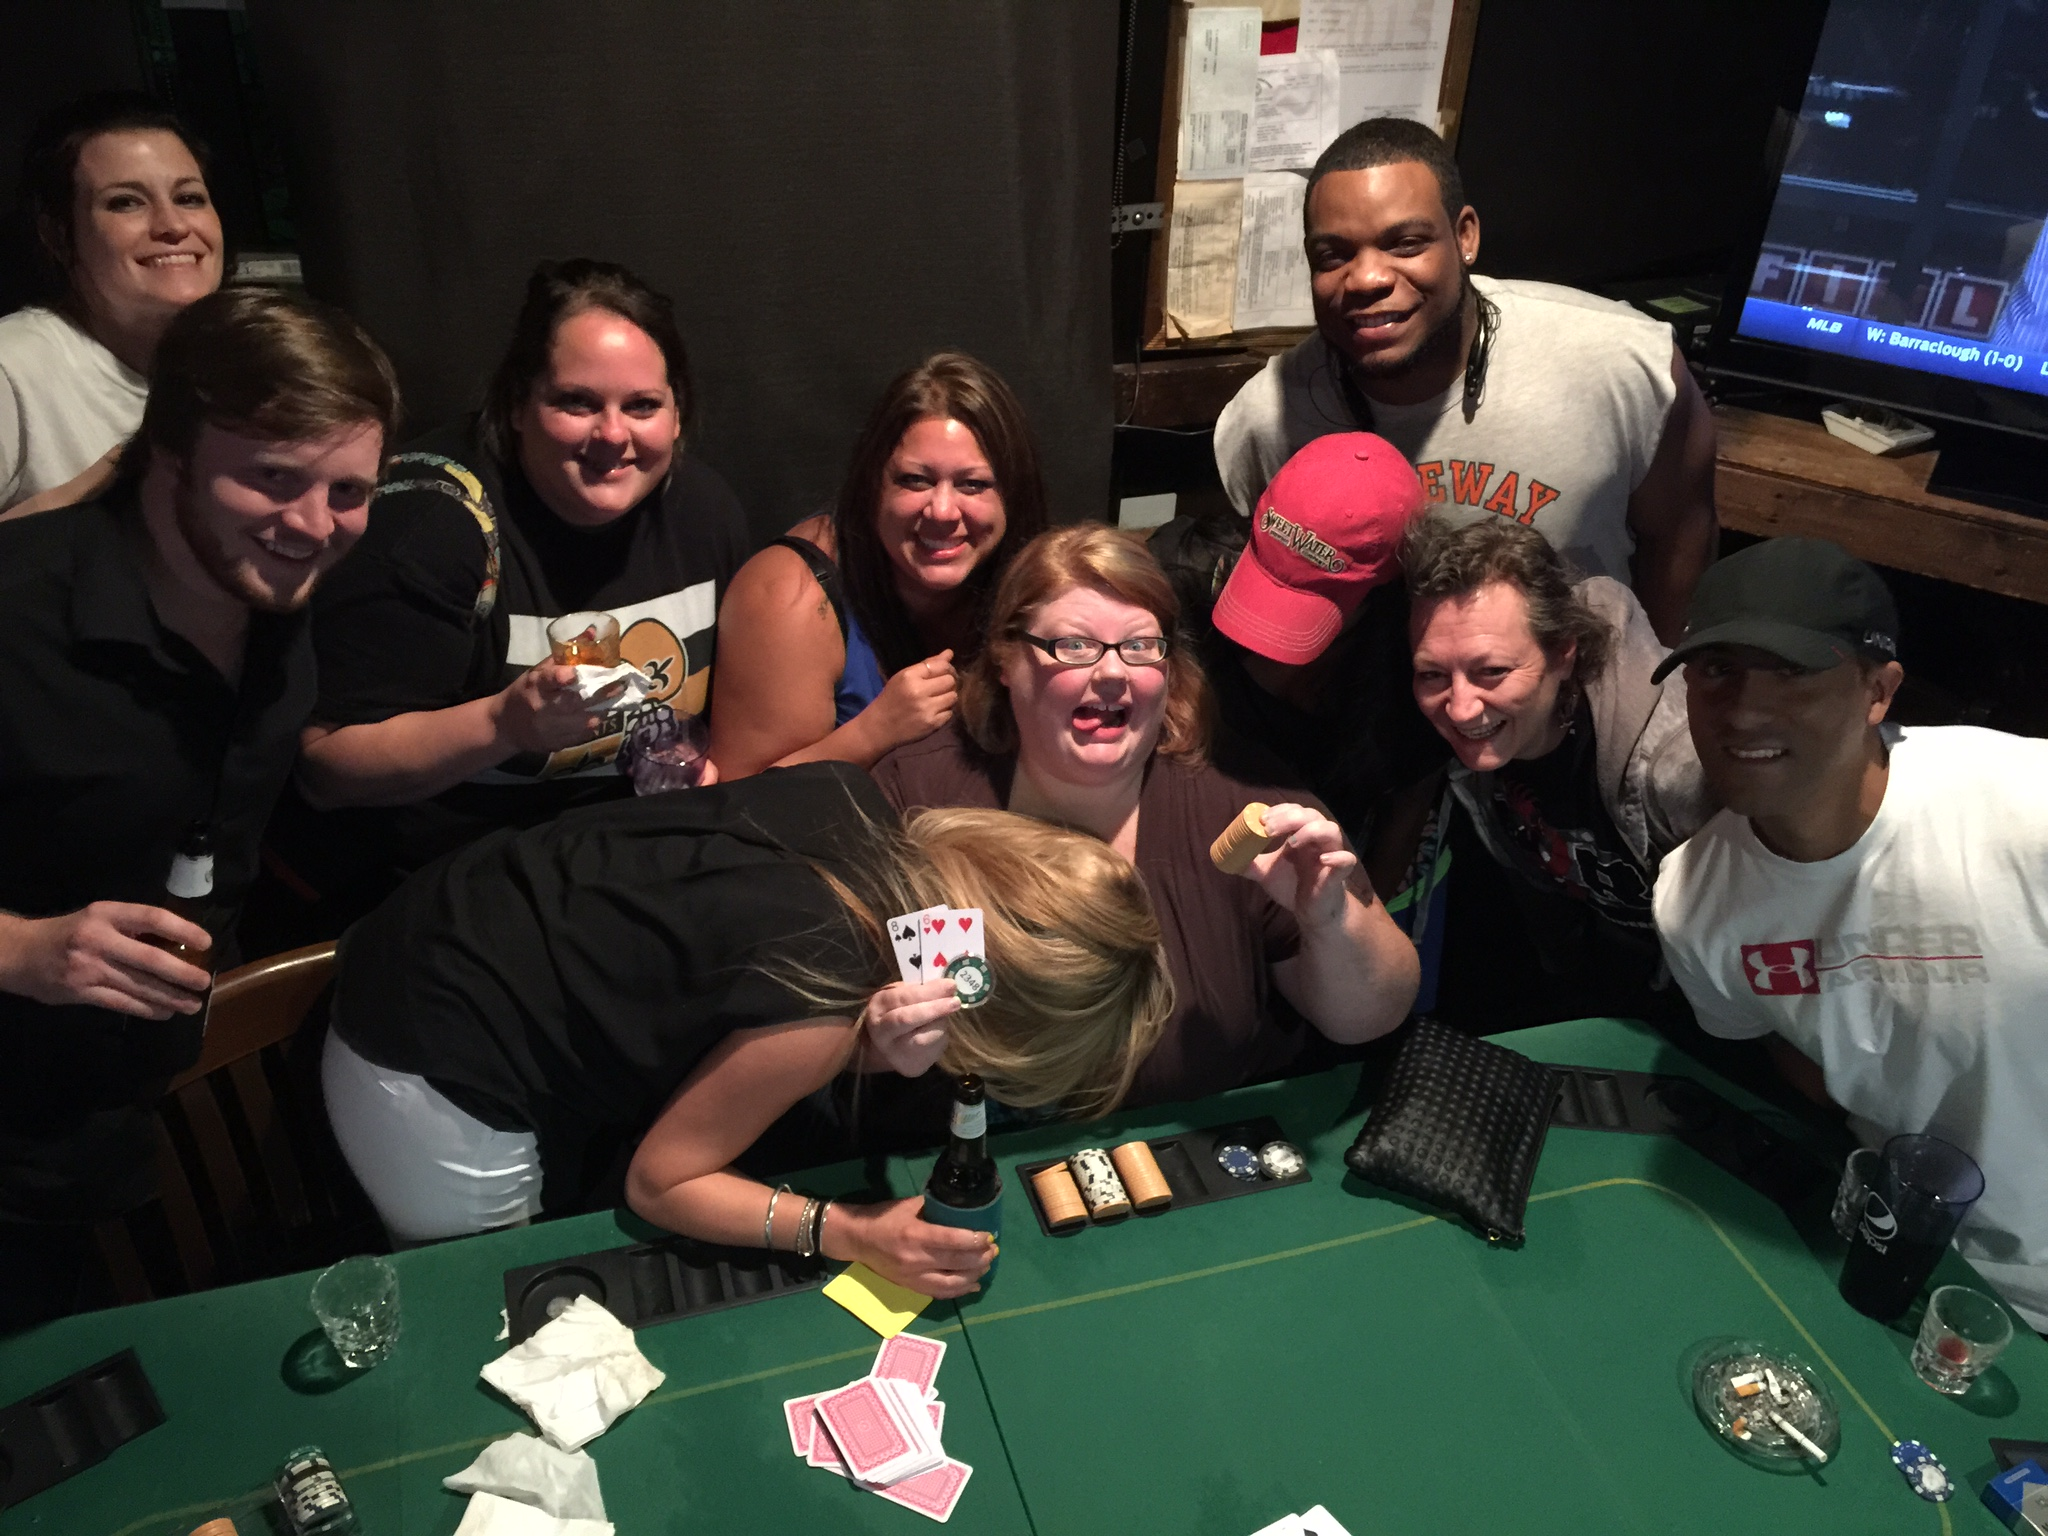 Memphis poker league places to play poker in boston